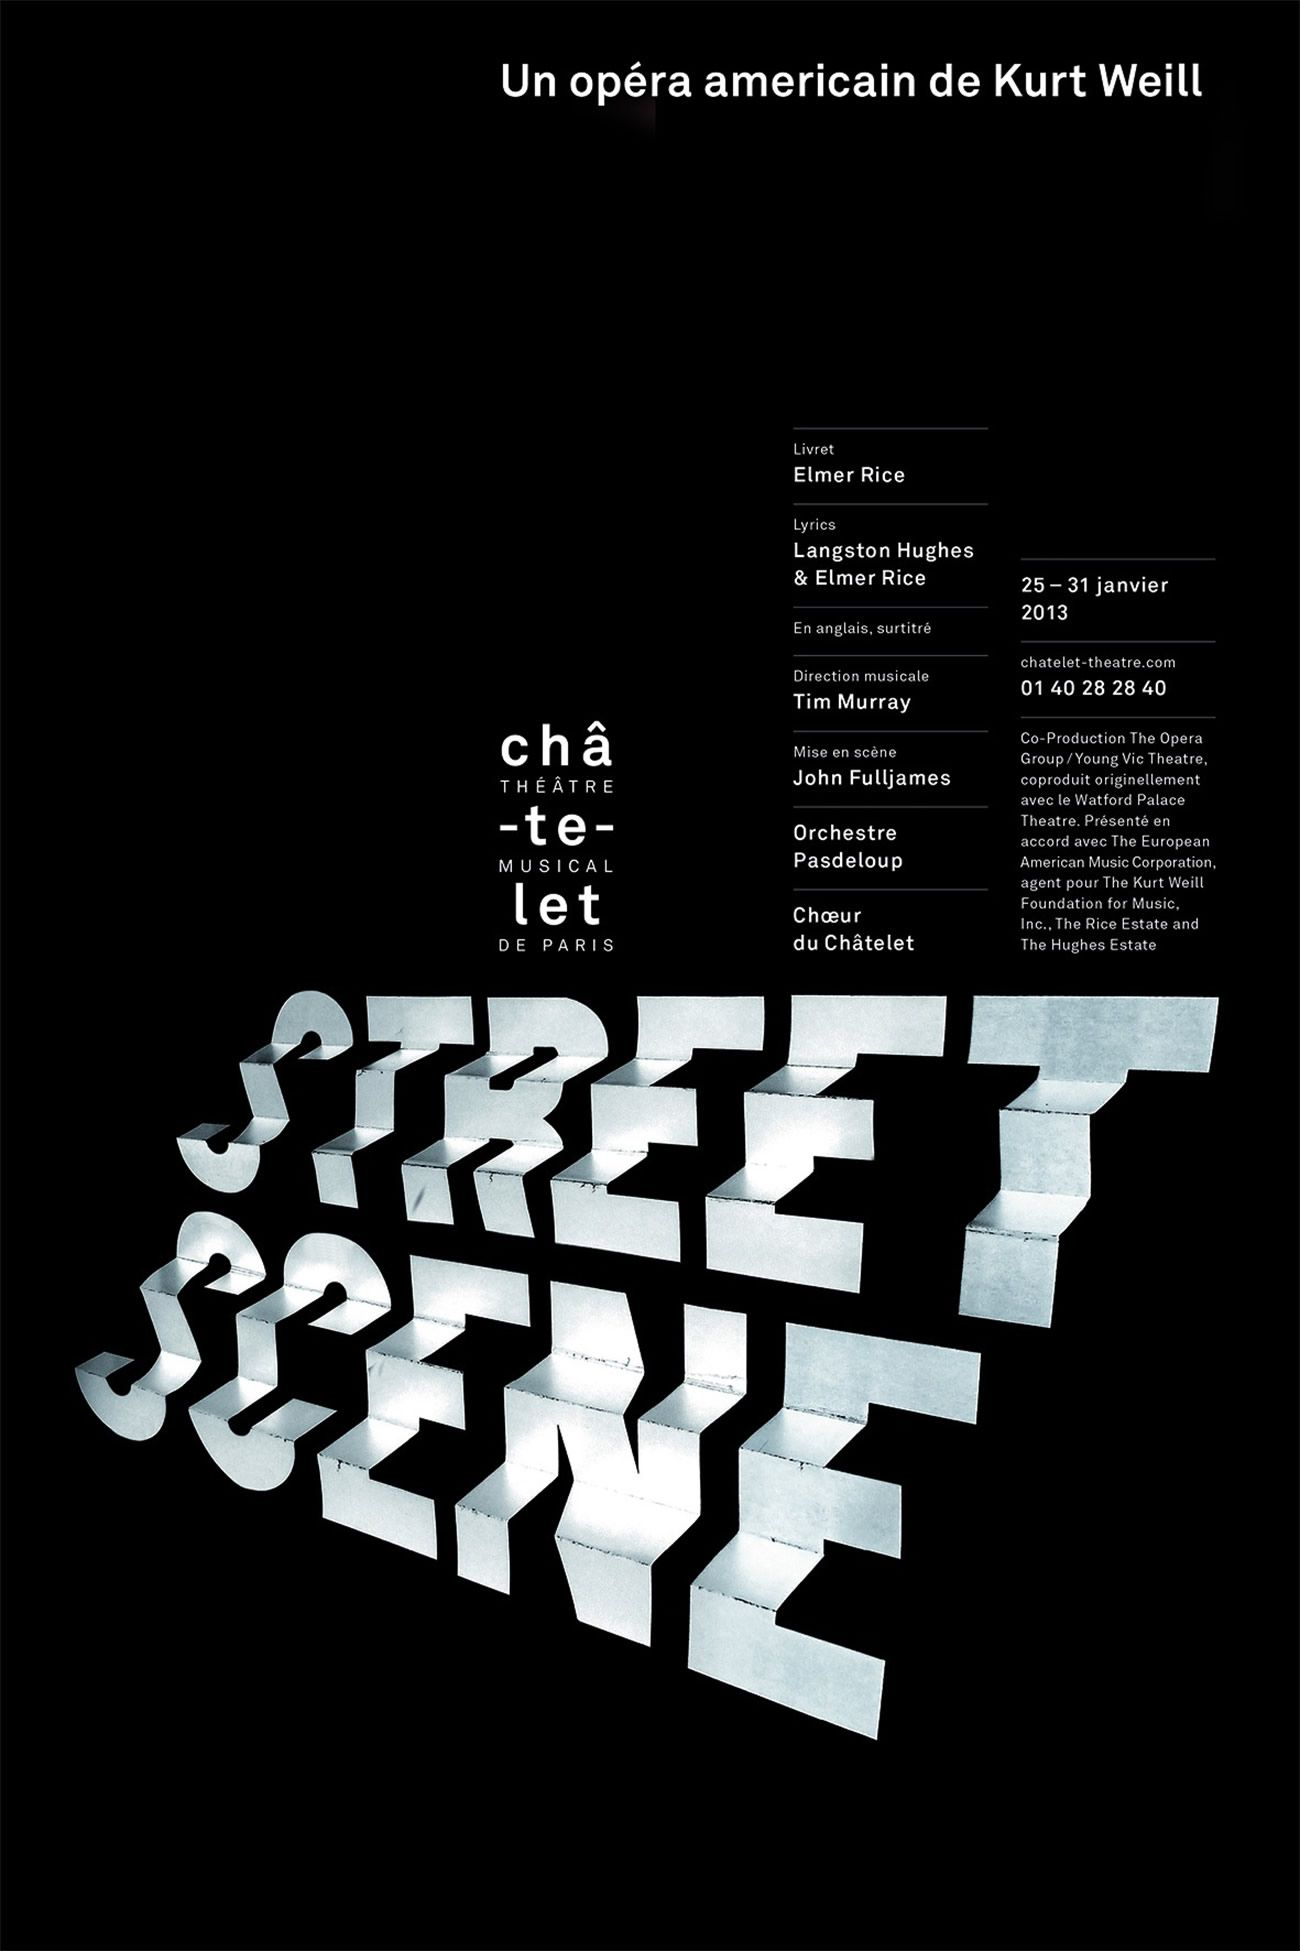 Poster design typography - 10 Great Poster Designs